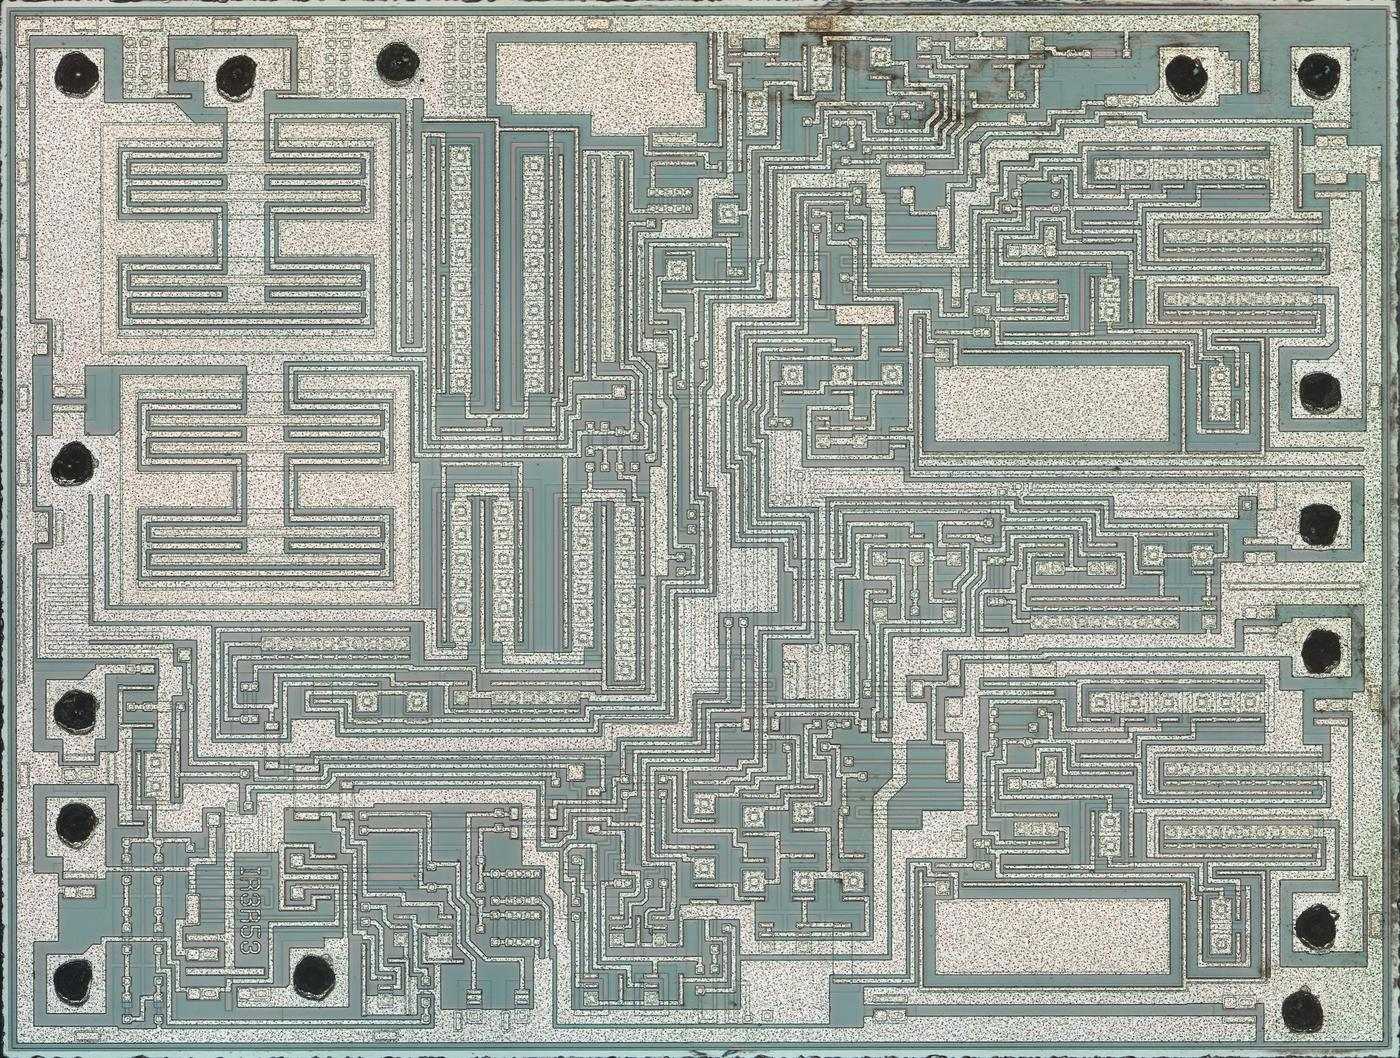 Die photo of the audio amplifier chip in the Nintendo Game Boy Color. Click this (or any other image) for a larger image. Photo courtesy of John McMaster.